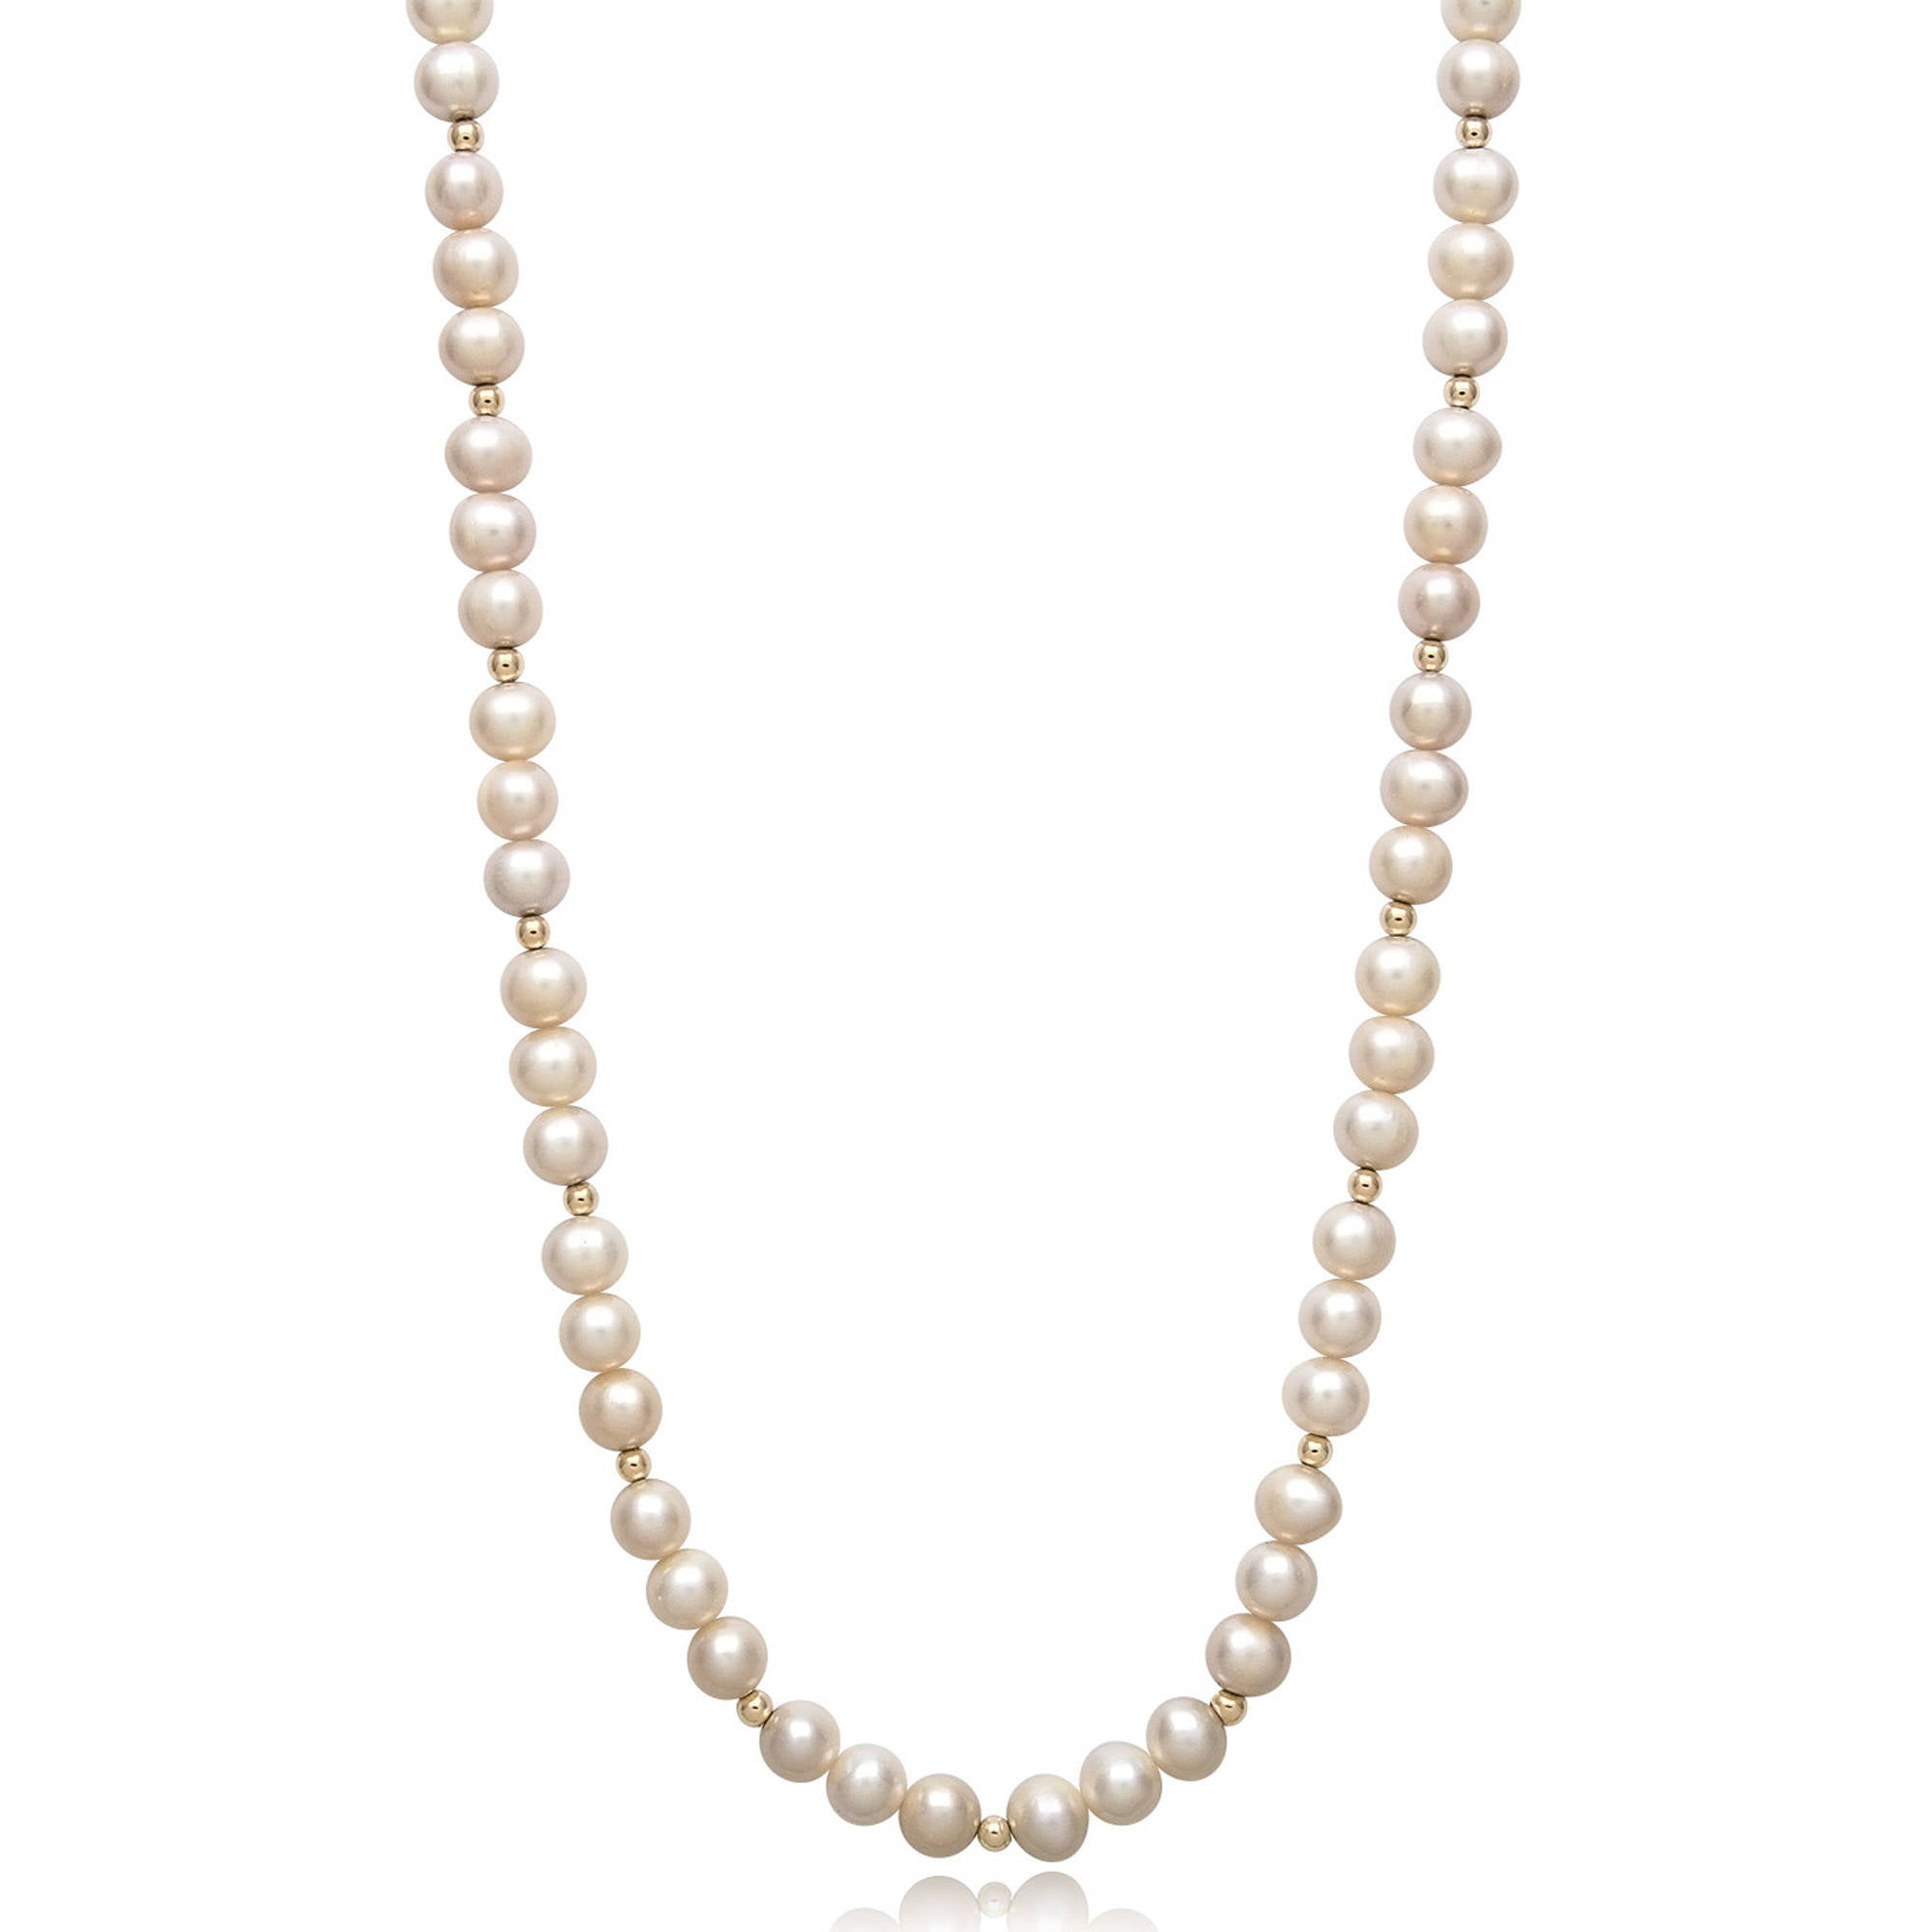 "6-7mm Genuine White Cultured Freshwater Pearl and 14kt Yellow Gold Bead Necklace, 18"" by China Pearl"